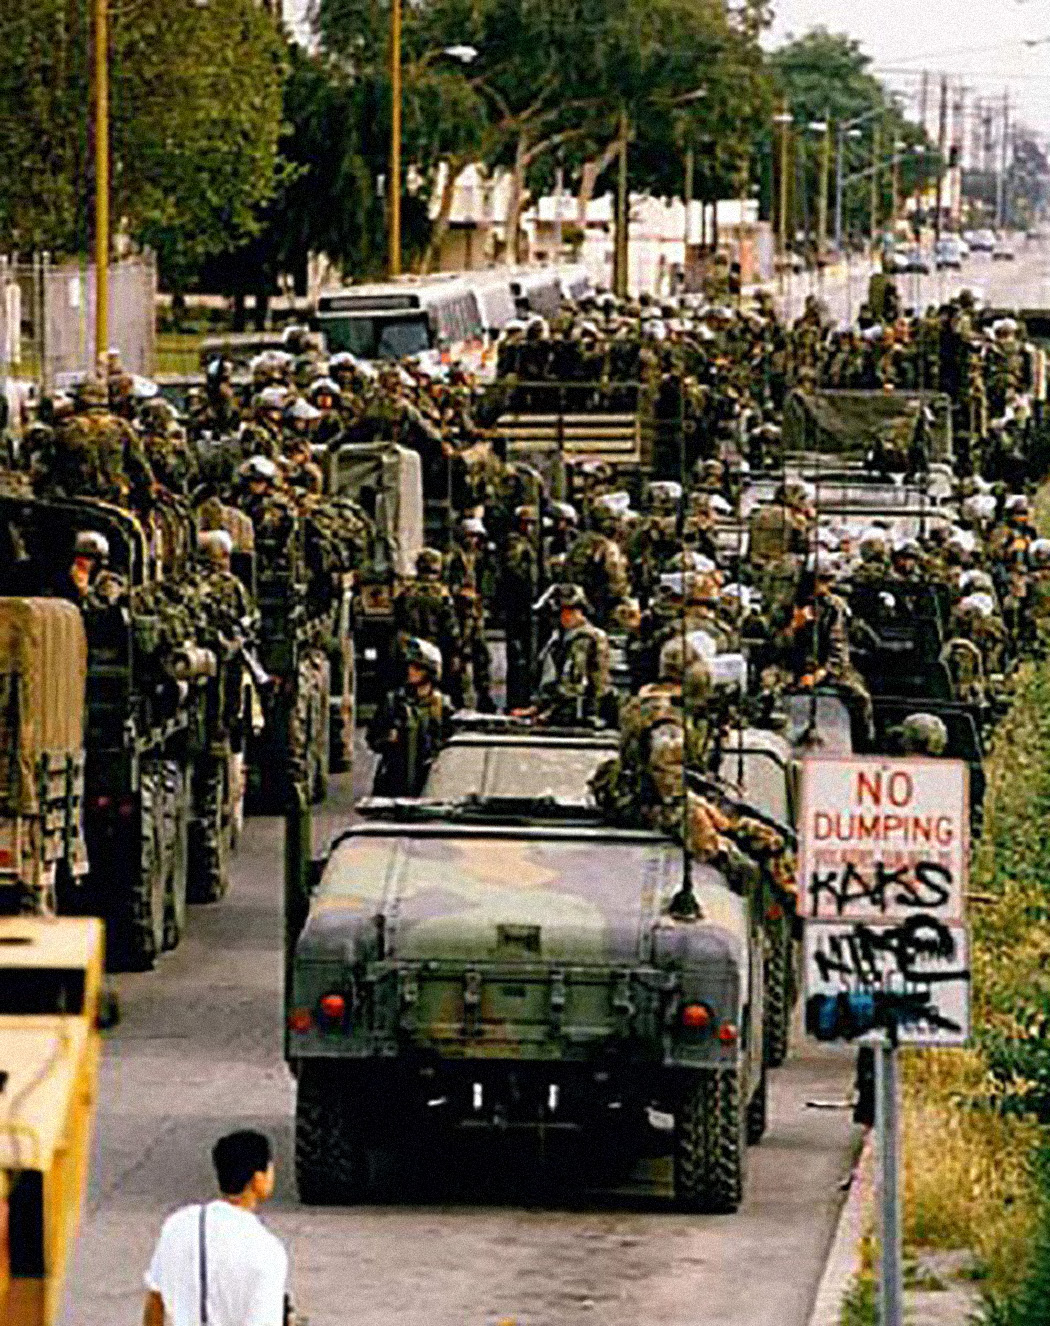 Marines disembark from their Humvees in Compton during the L.A. riots, 1992